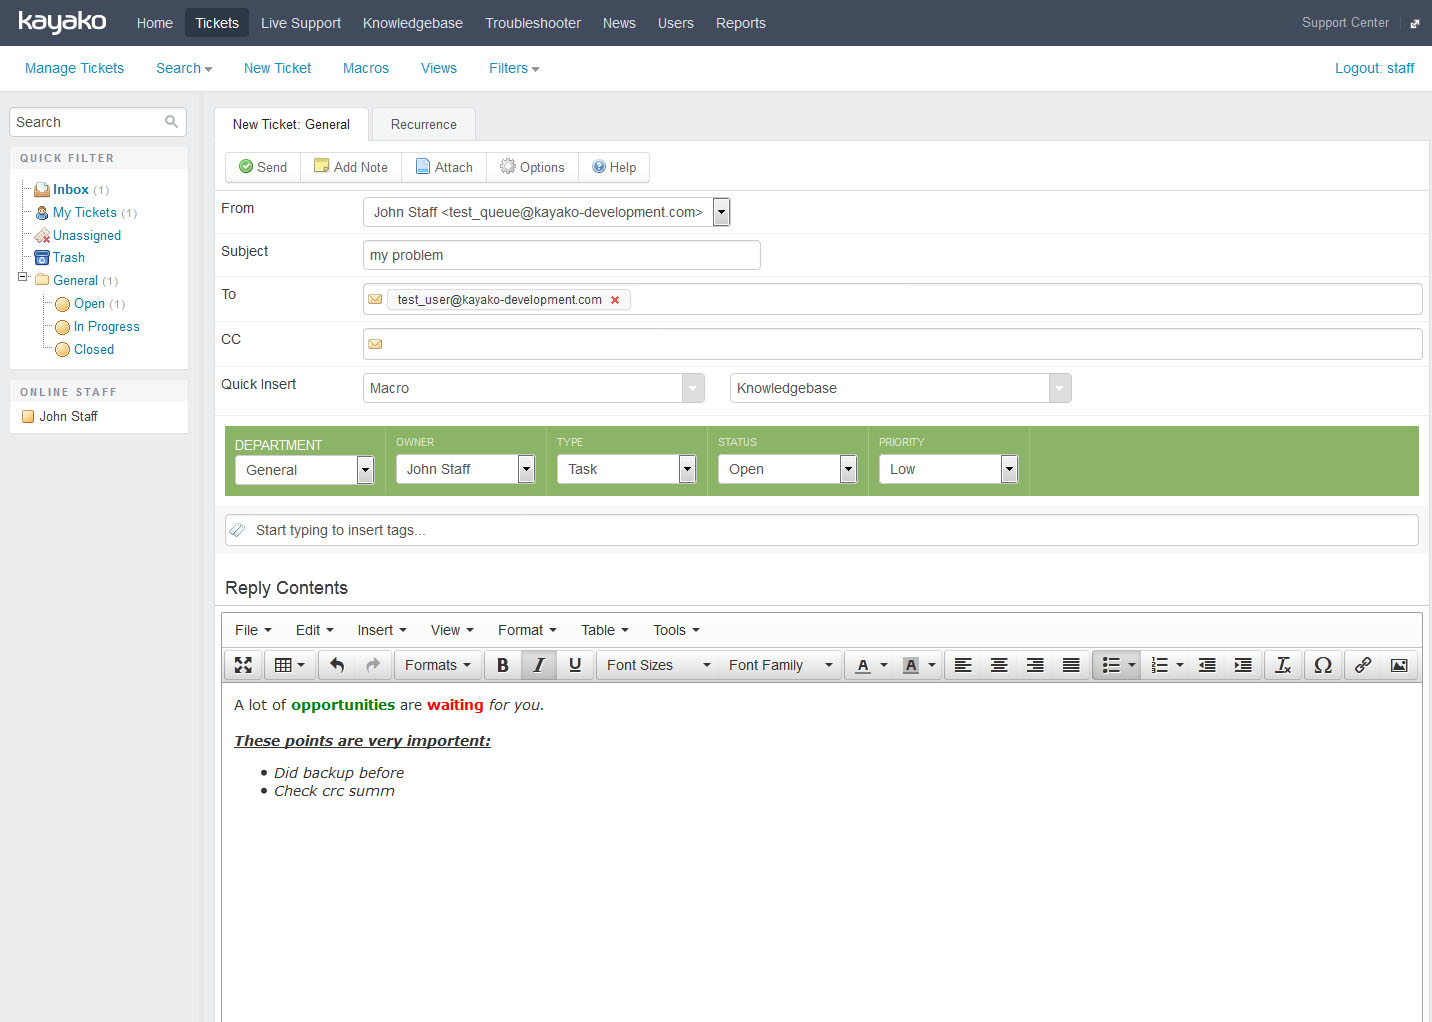 kayako new ticket page with rich text editor